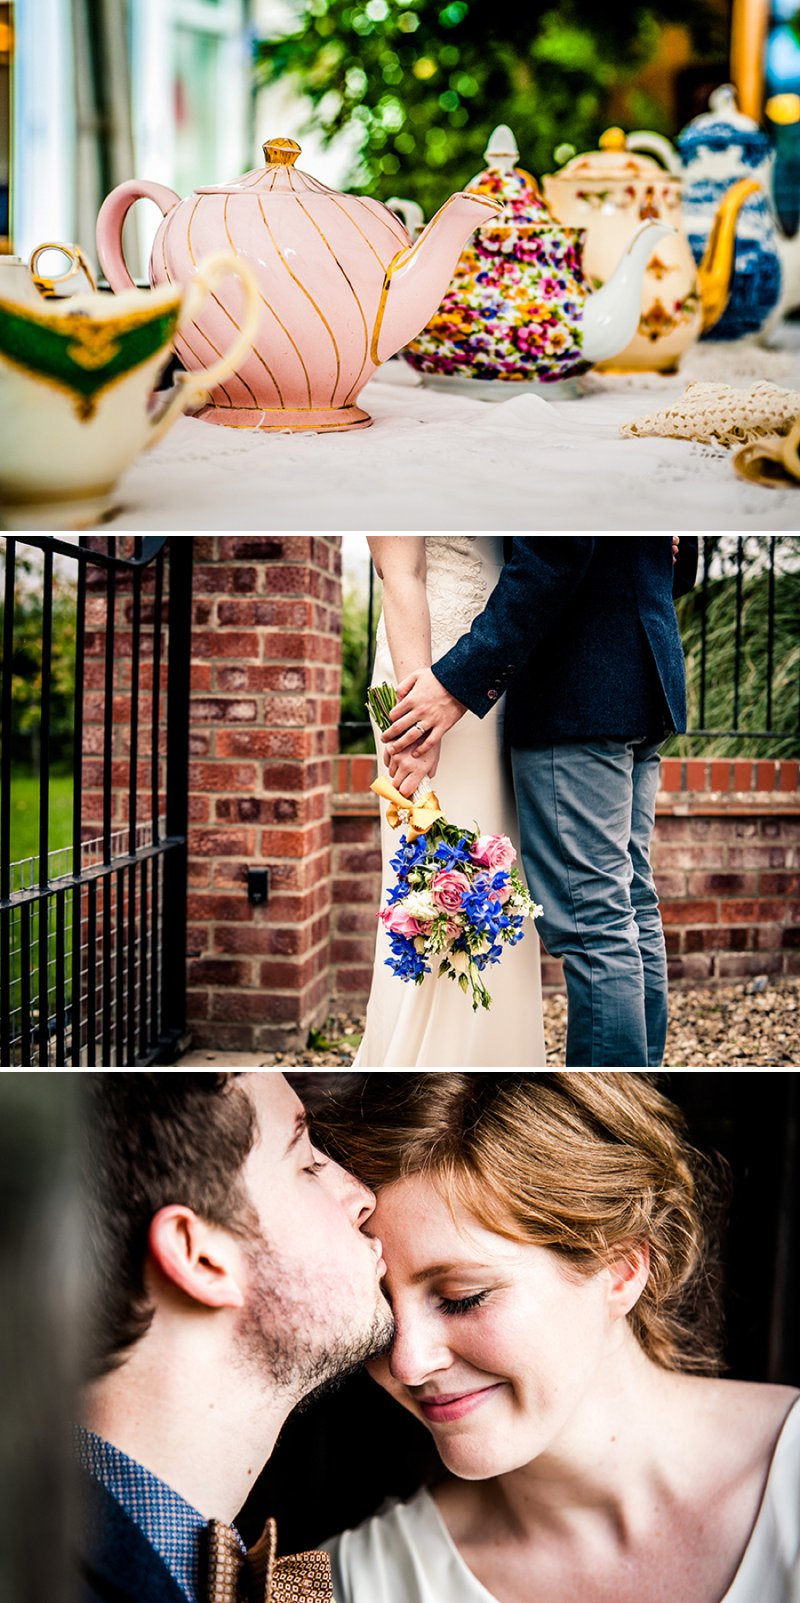 Rustic Backyard Wedding With Bride In Elegant Rapsimo Dress And Groom In Wool Suit And Bowtie With Lots Of Home Made Details And A High Tea Wedding Breakfast 1